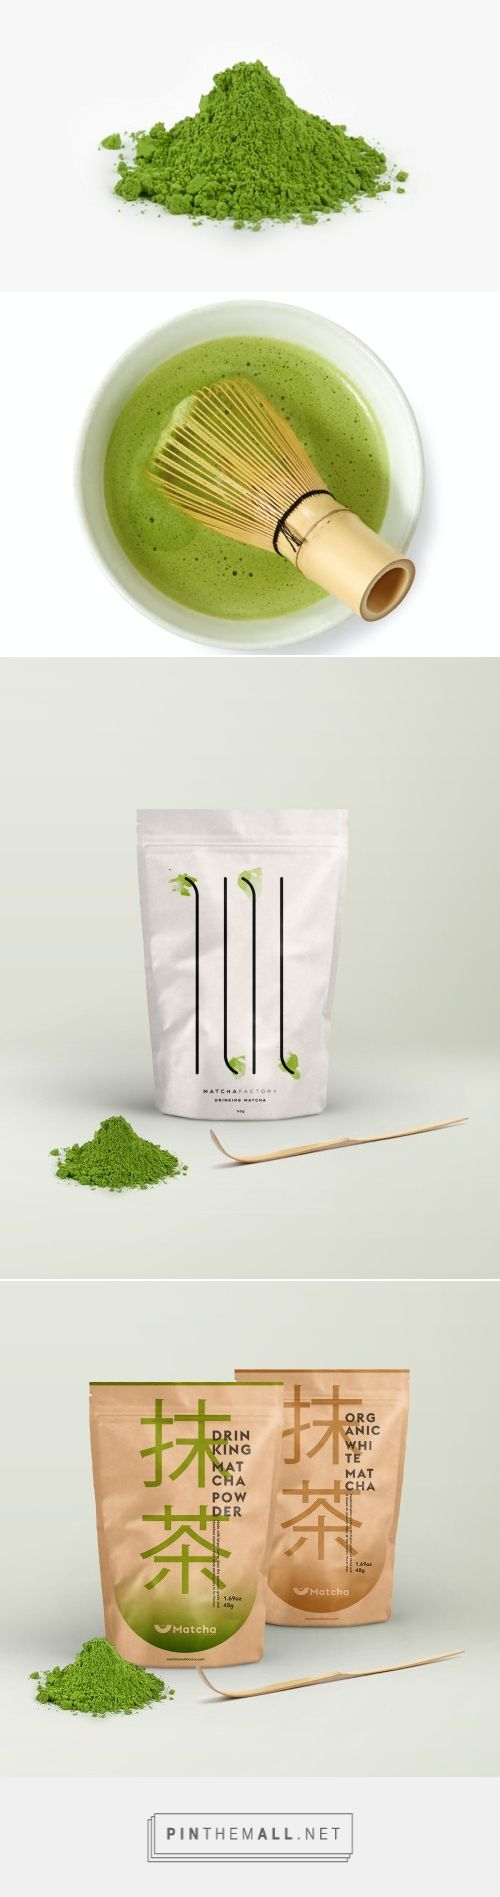 Rebranding Matcha 抹茶 via Title Blog curated by Packaging Diva PD. Which design do you like better?